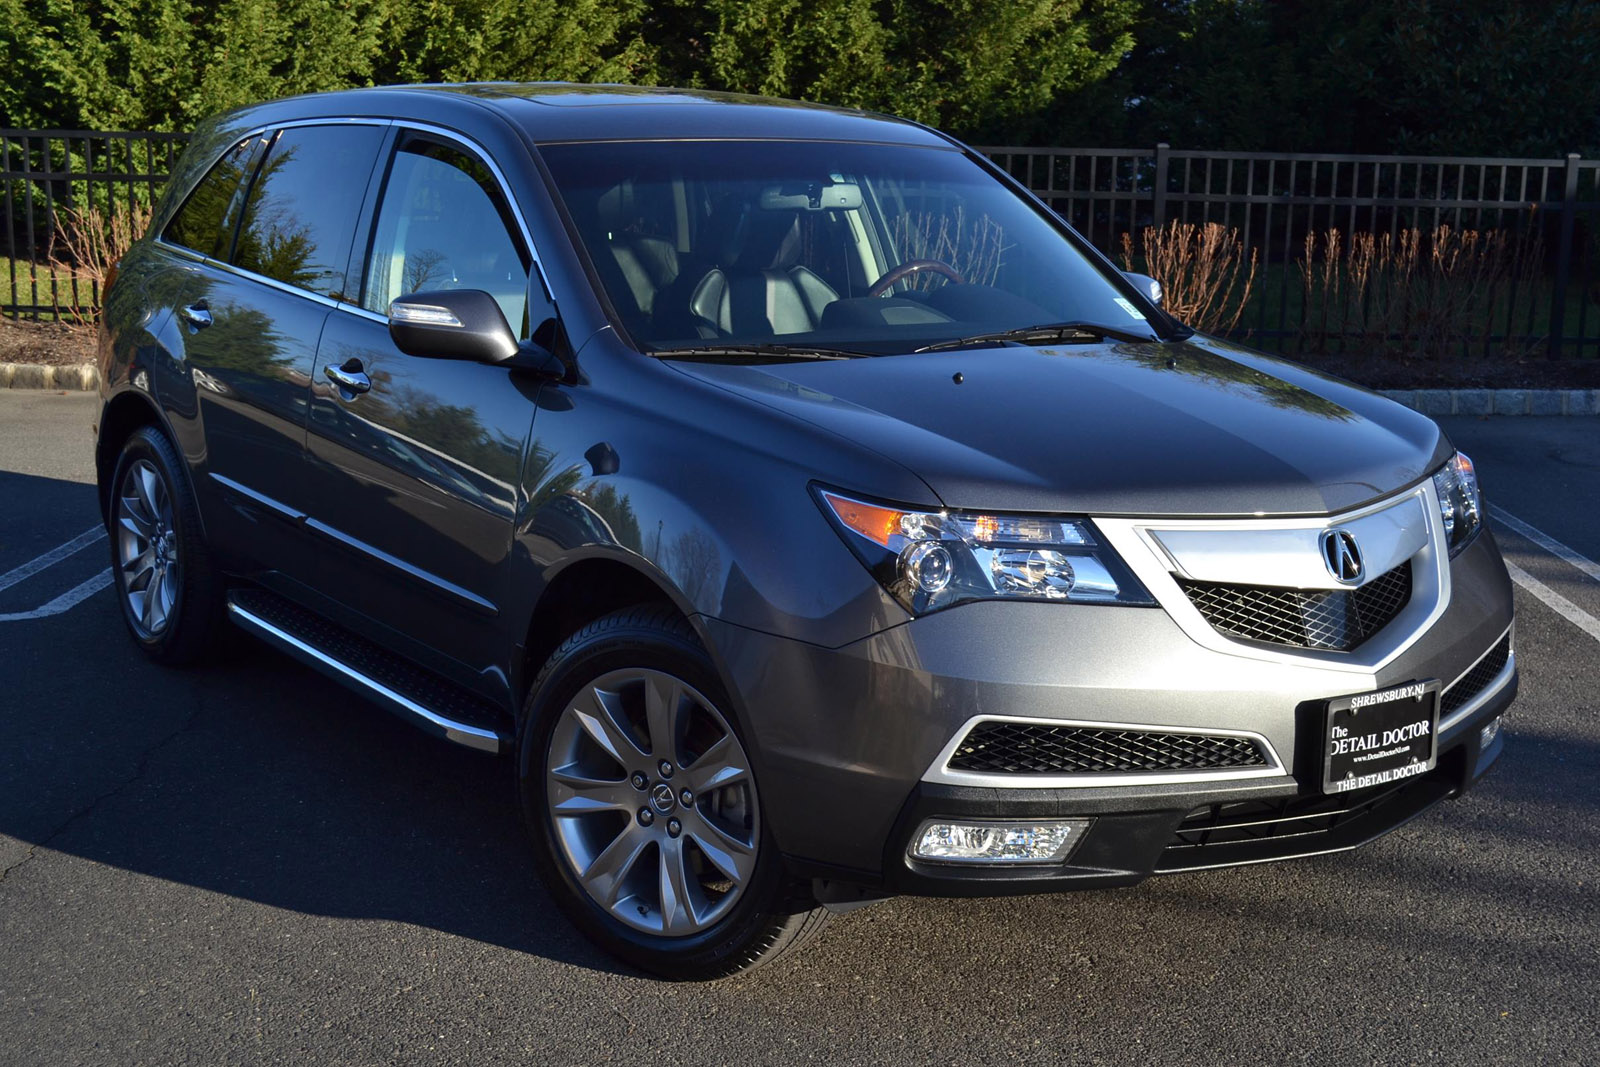 acura mdx 2011 pre owned. Black Bedroom Furniture Sets. Home Design Ideas